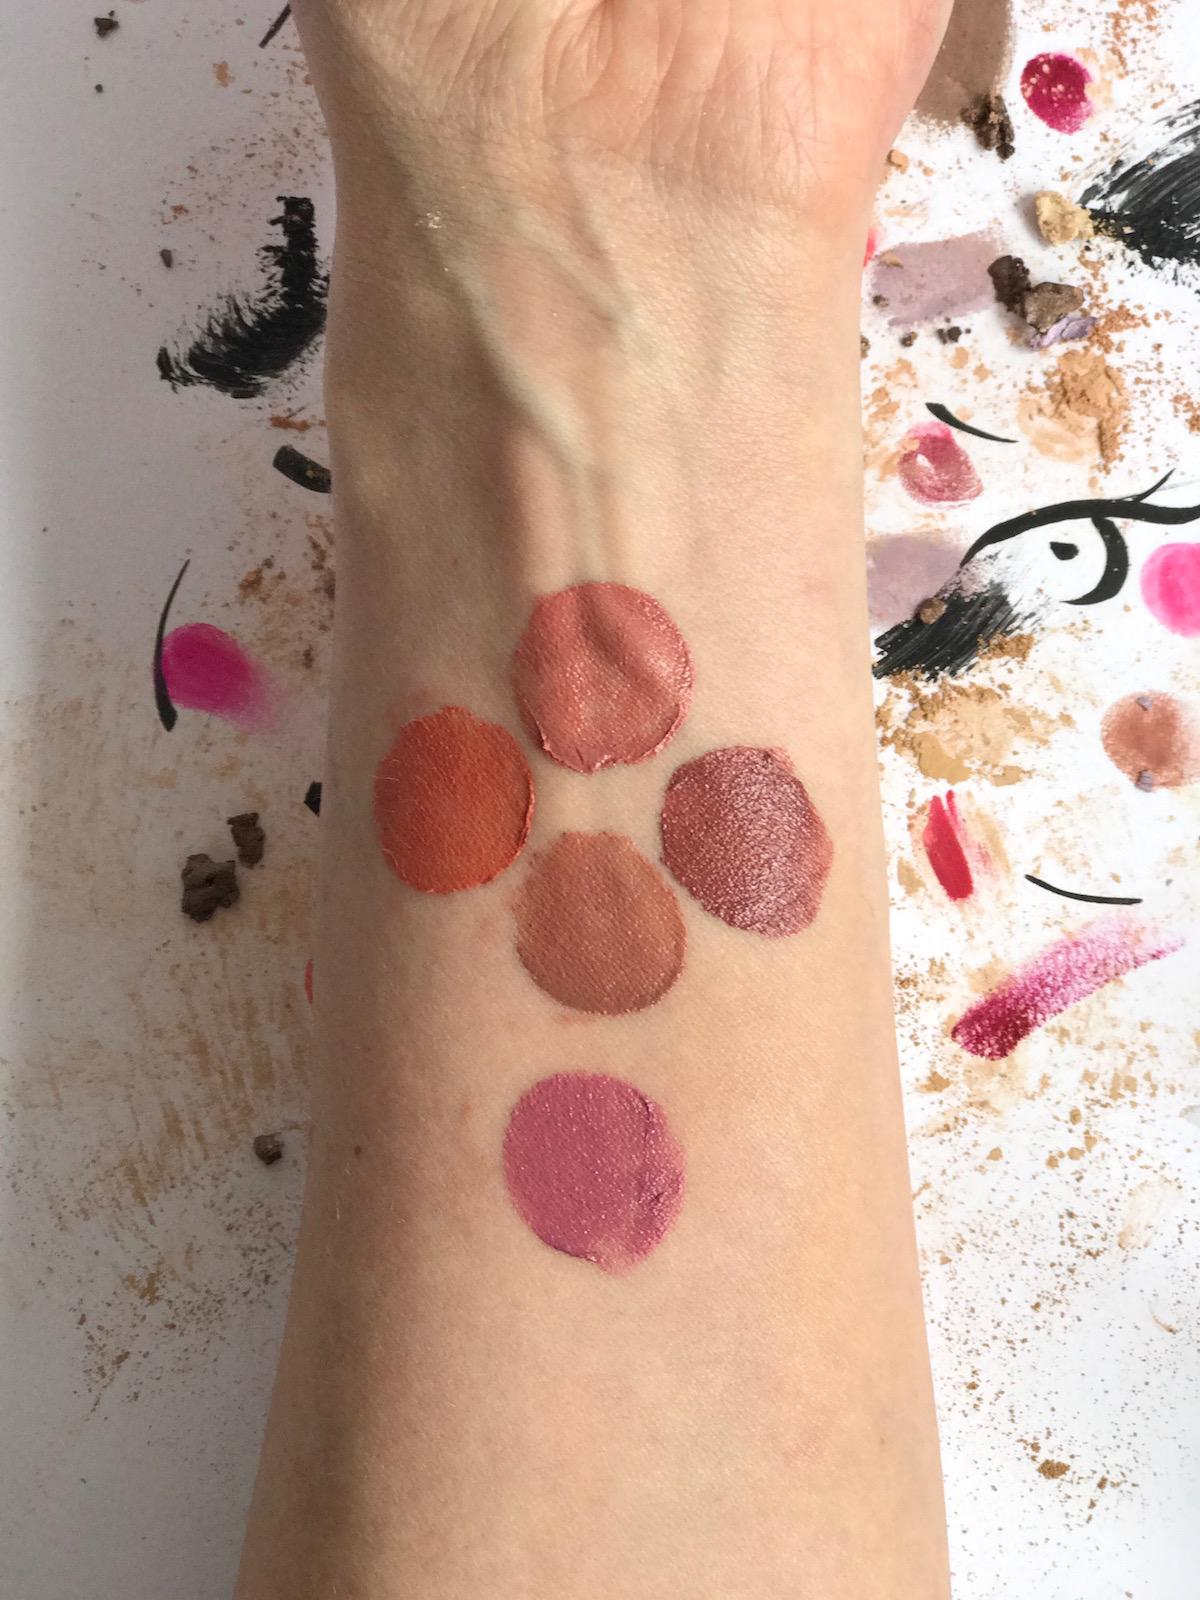 Avon Mark Lipstick Nude Tones Swatches Beautyfullblog